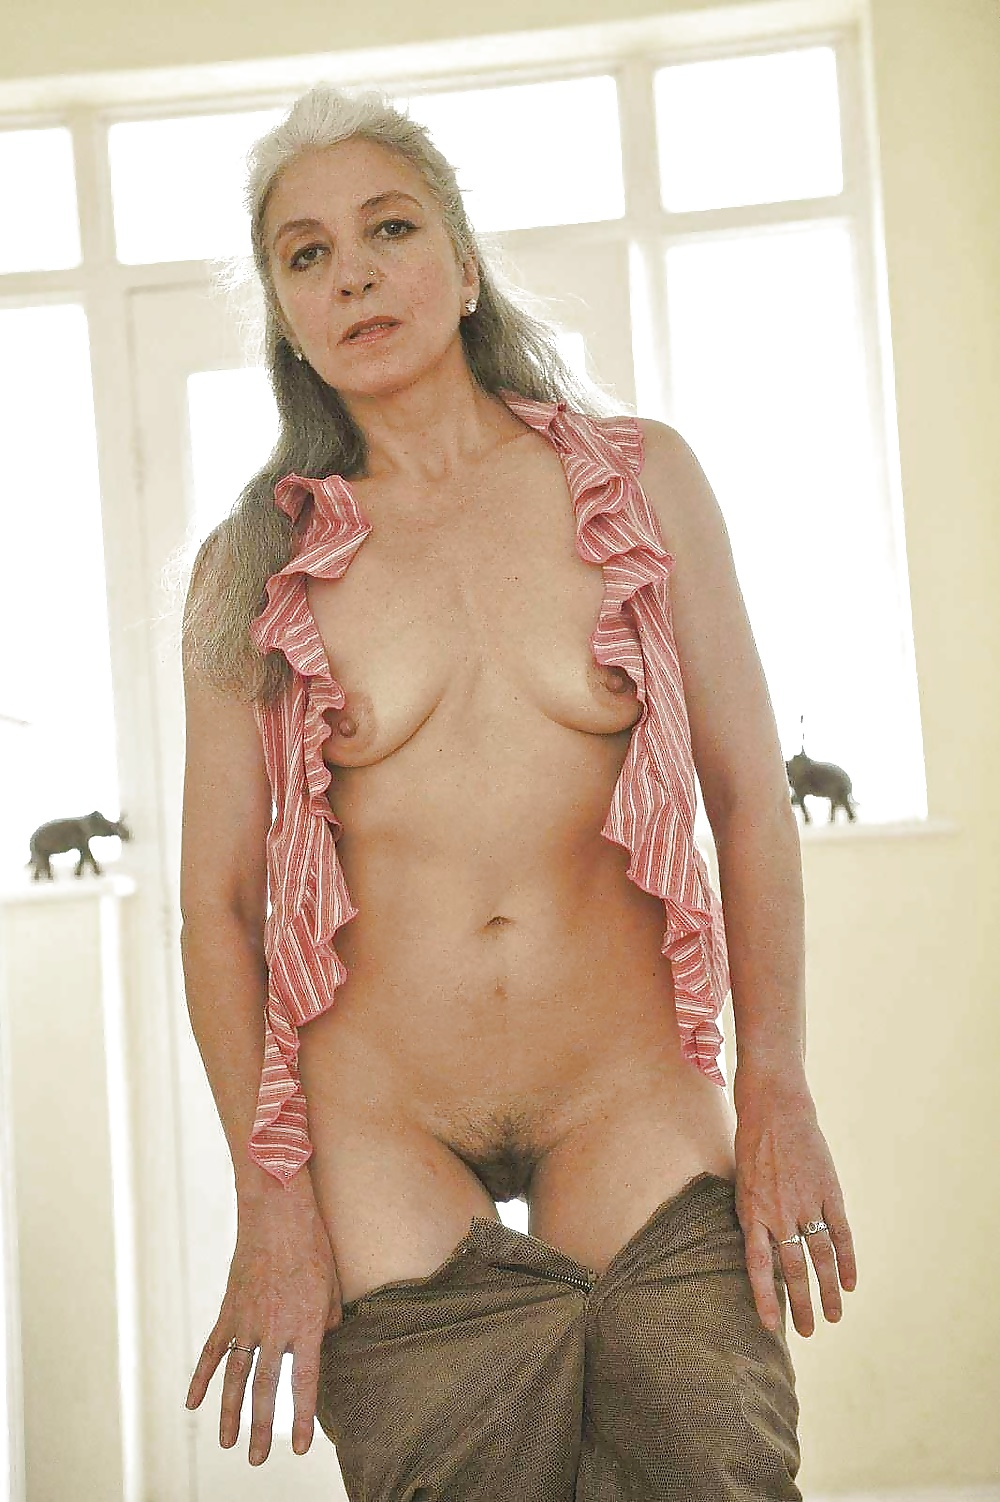 Gray haired women nude 3